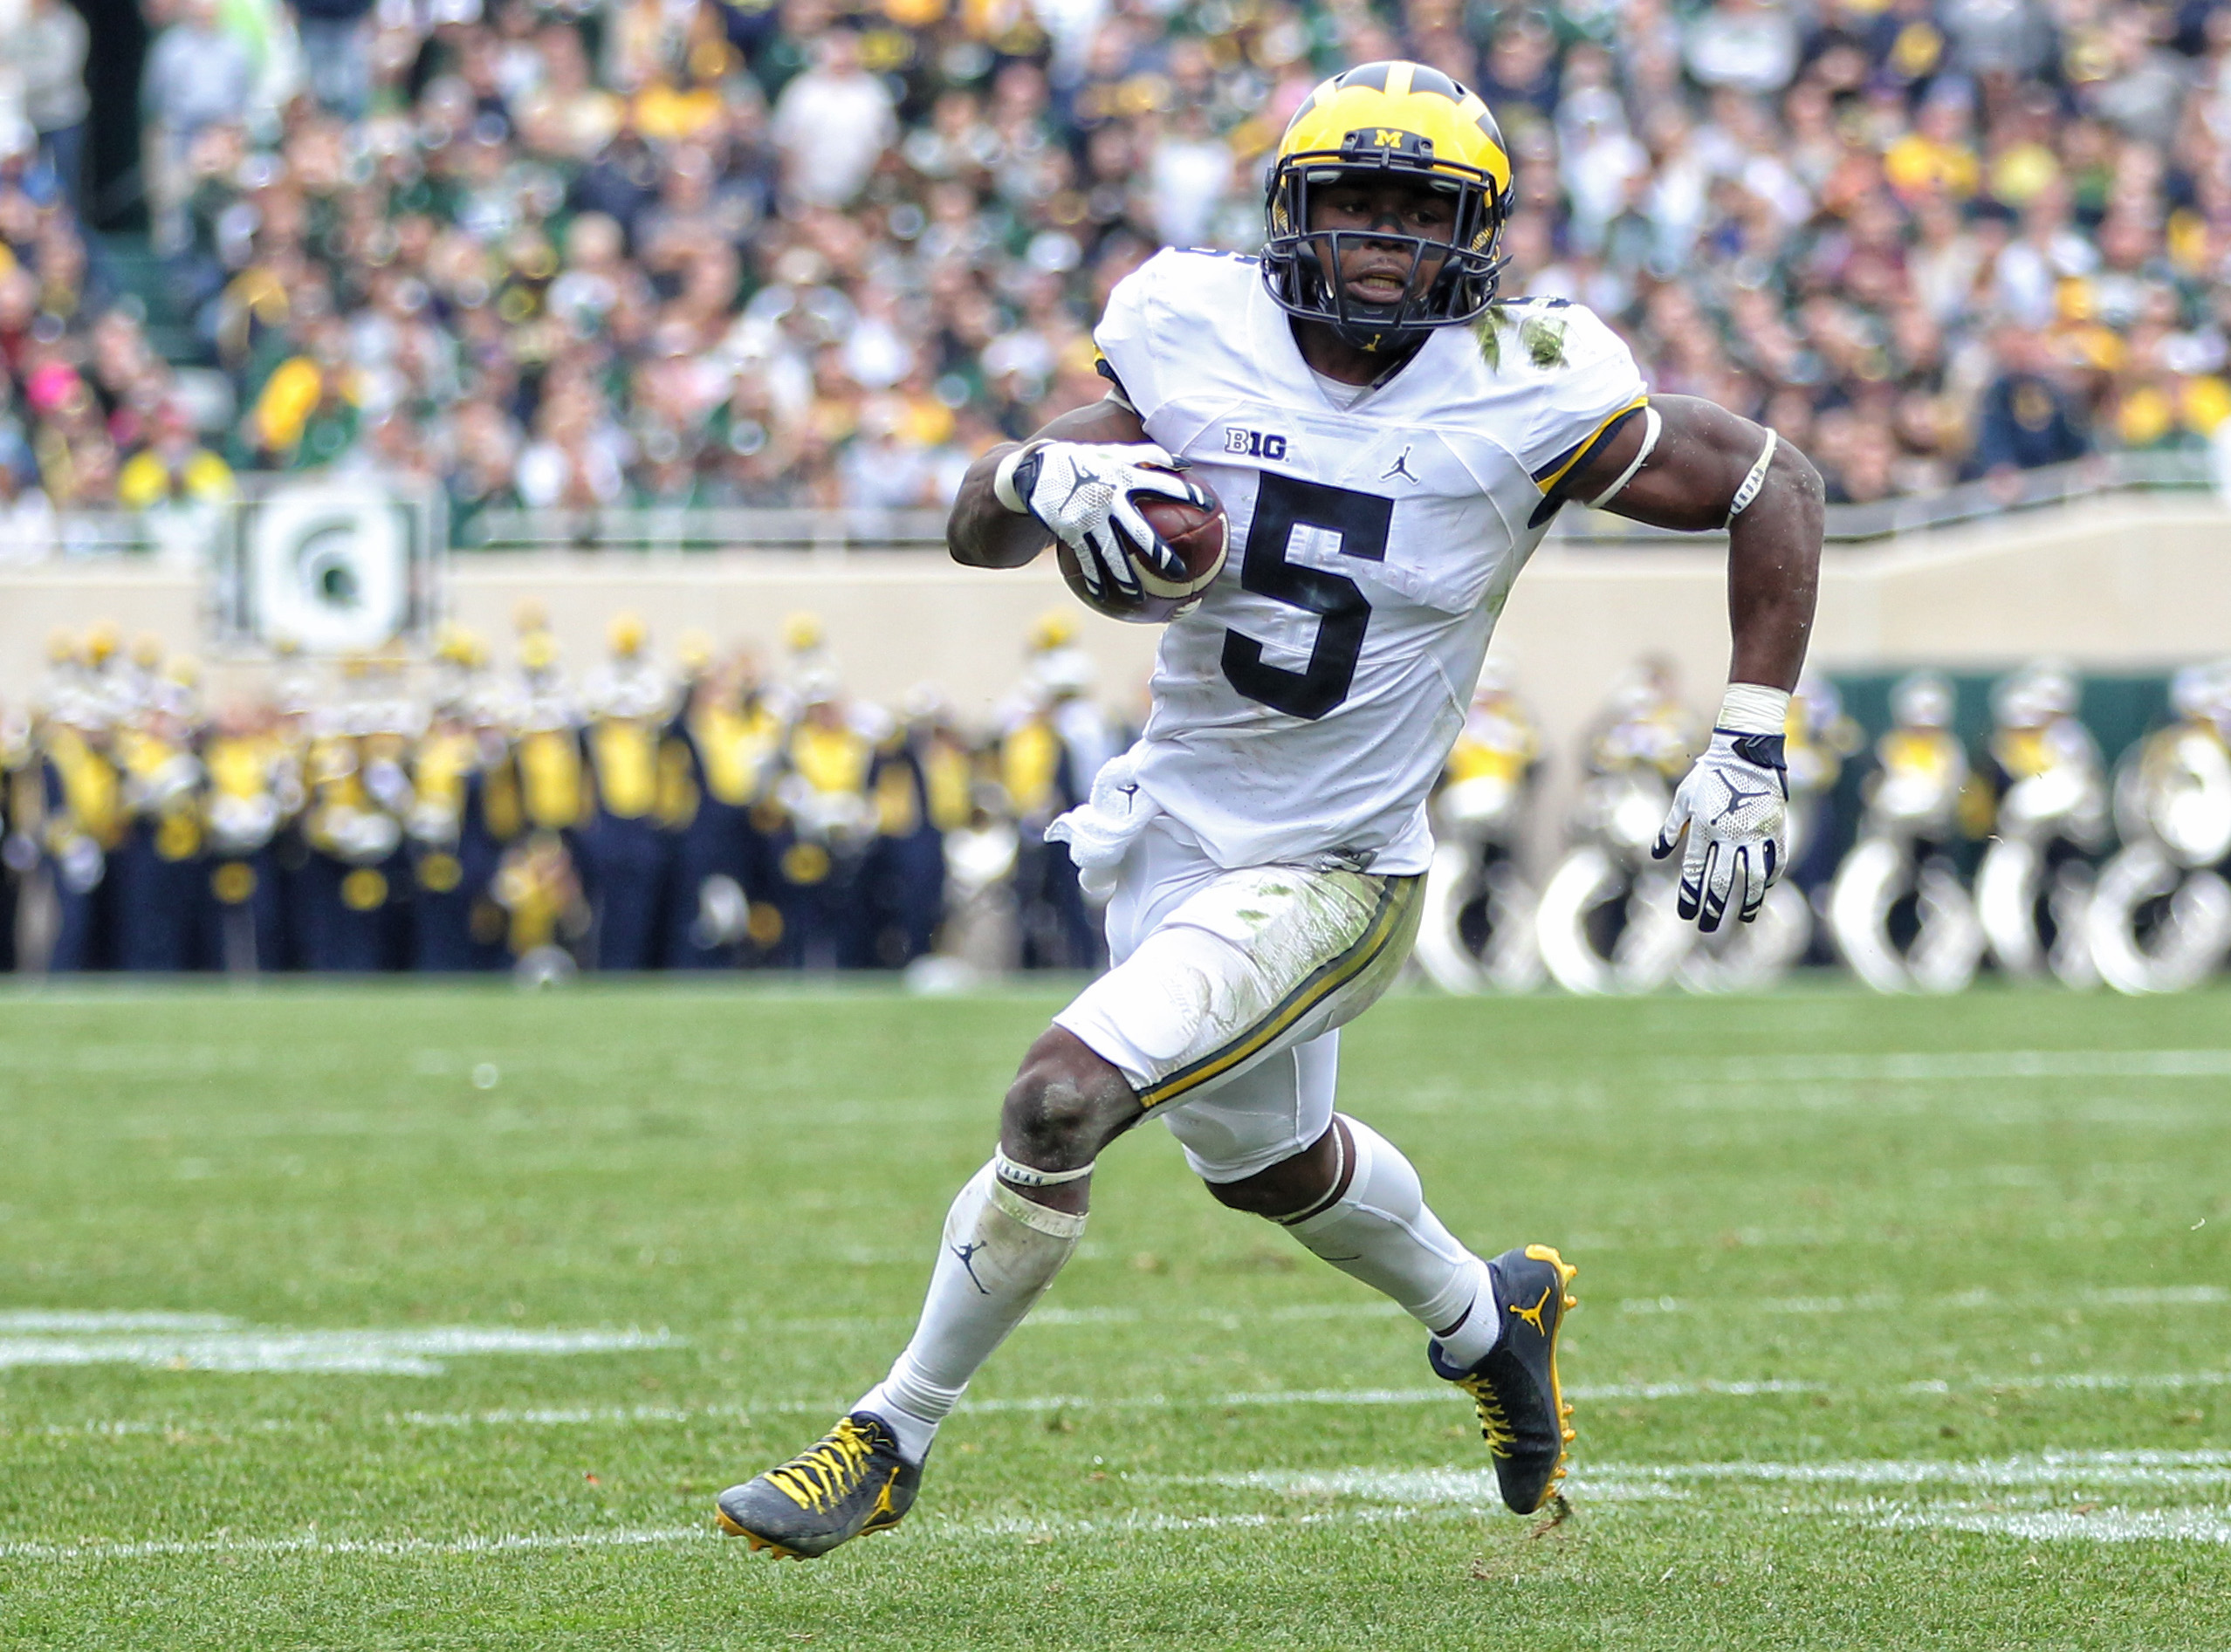 Oct 29, 2016; East Lansing, MI, USA; Michigan Wolverines linebacker Jabrill Peppers (5) runs the ball during the first half of a game against the Michigan State Spartans at Spartan Stadium. Mandatory Credit: Mike Carter-USA TODAY Sports